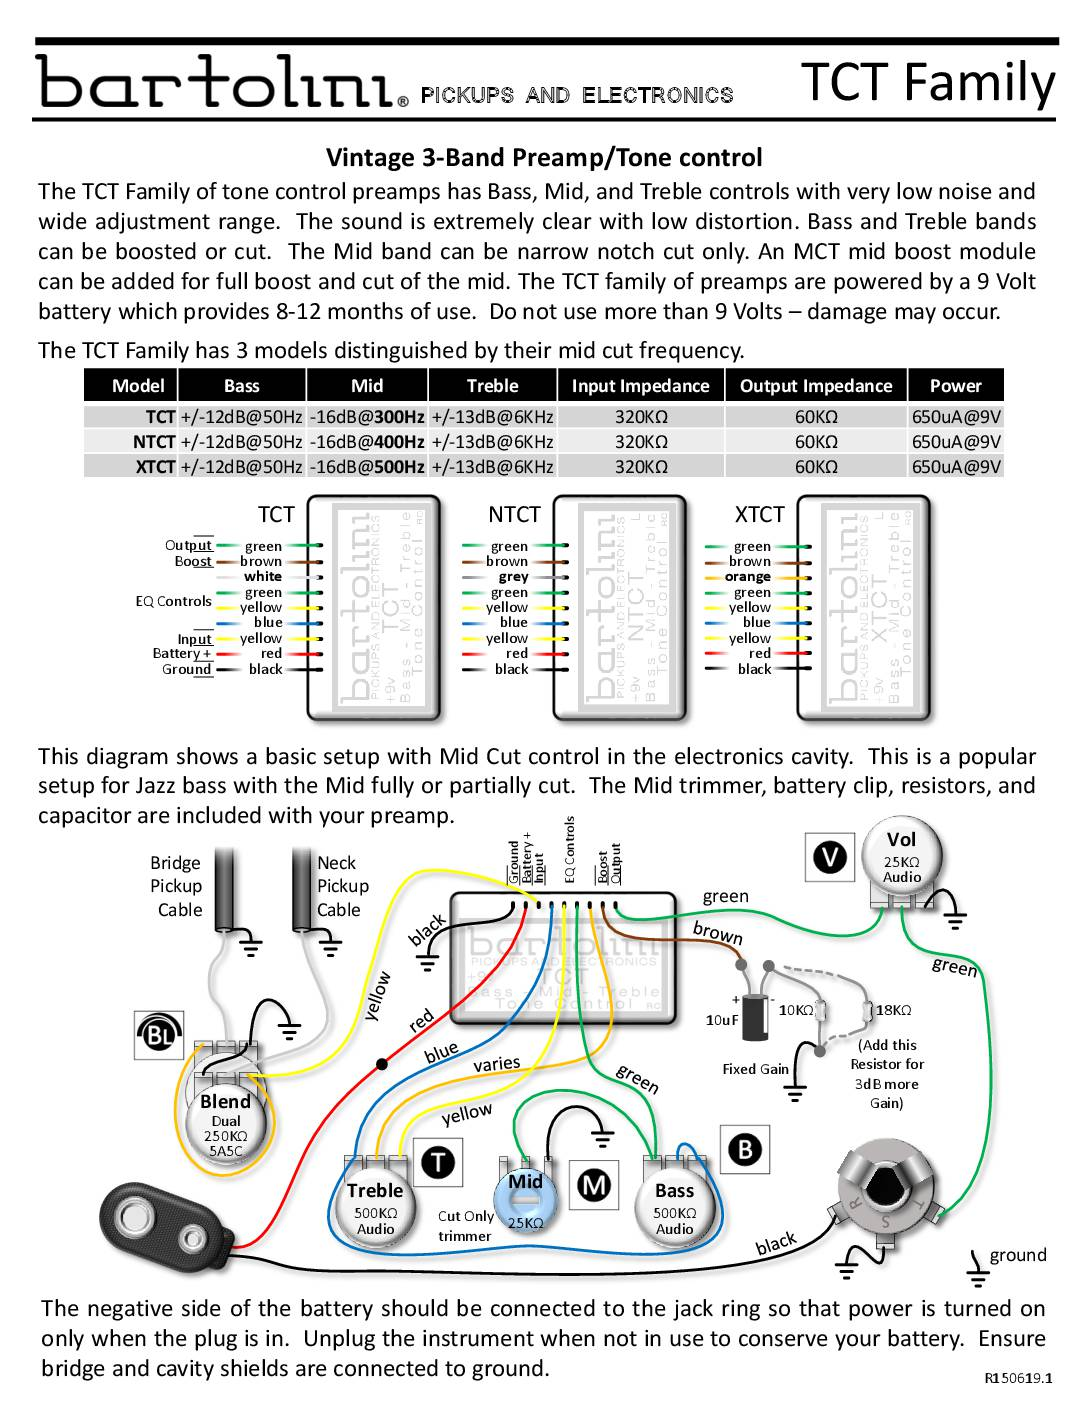 And Tone Wiring Options Diagram Fender Stratocaster Guitar Forum Bartolini Pickups Electronics Tct